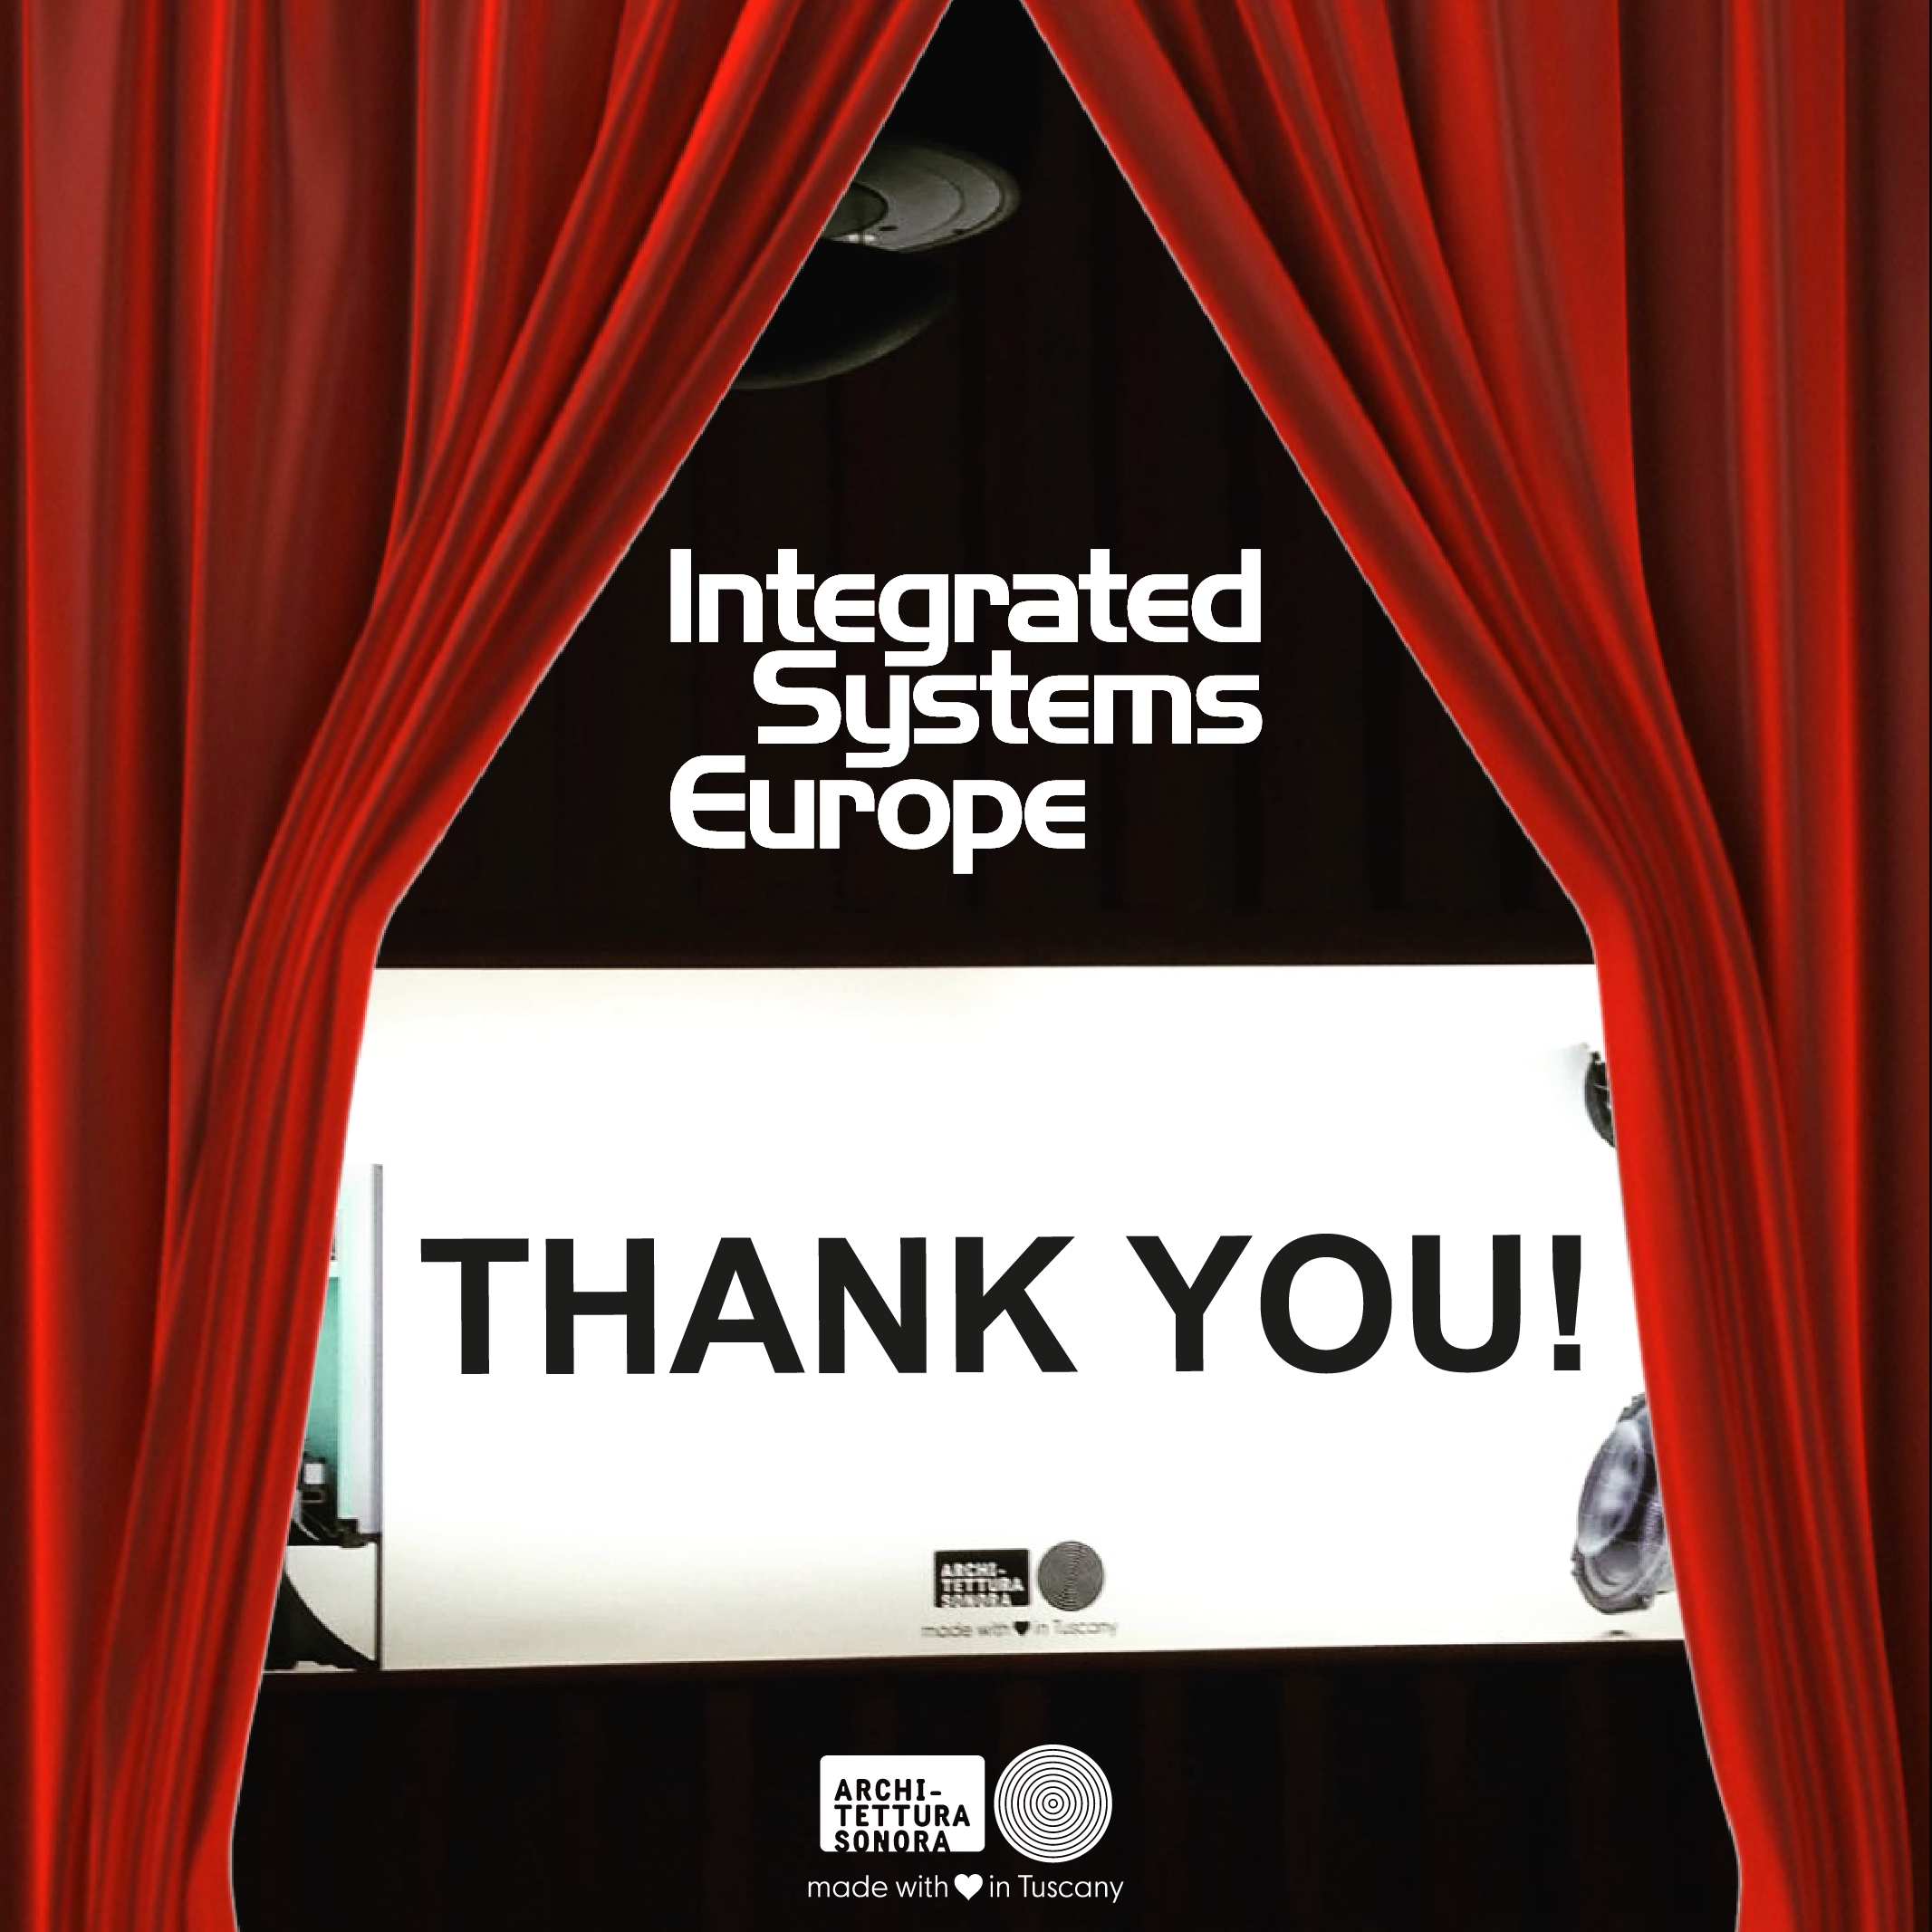 Thank you for being part of ‪#ISE2017 #ArchitetturaSonora's success! What an event! See you next year, save the date: ‪#ISE2018 > 6-9 February 2018